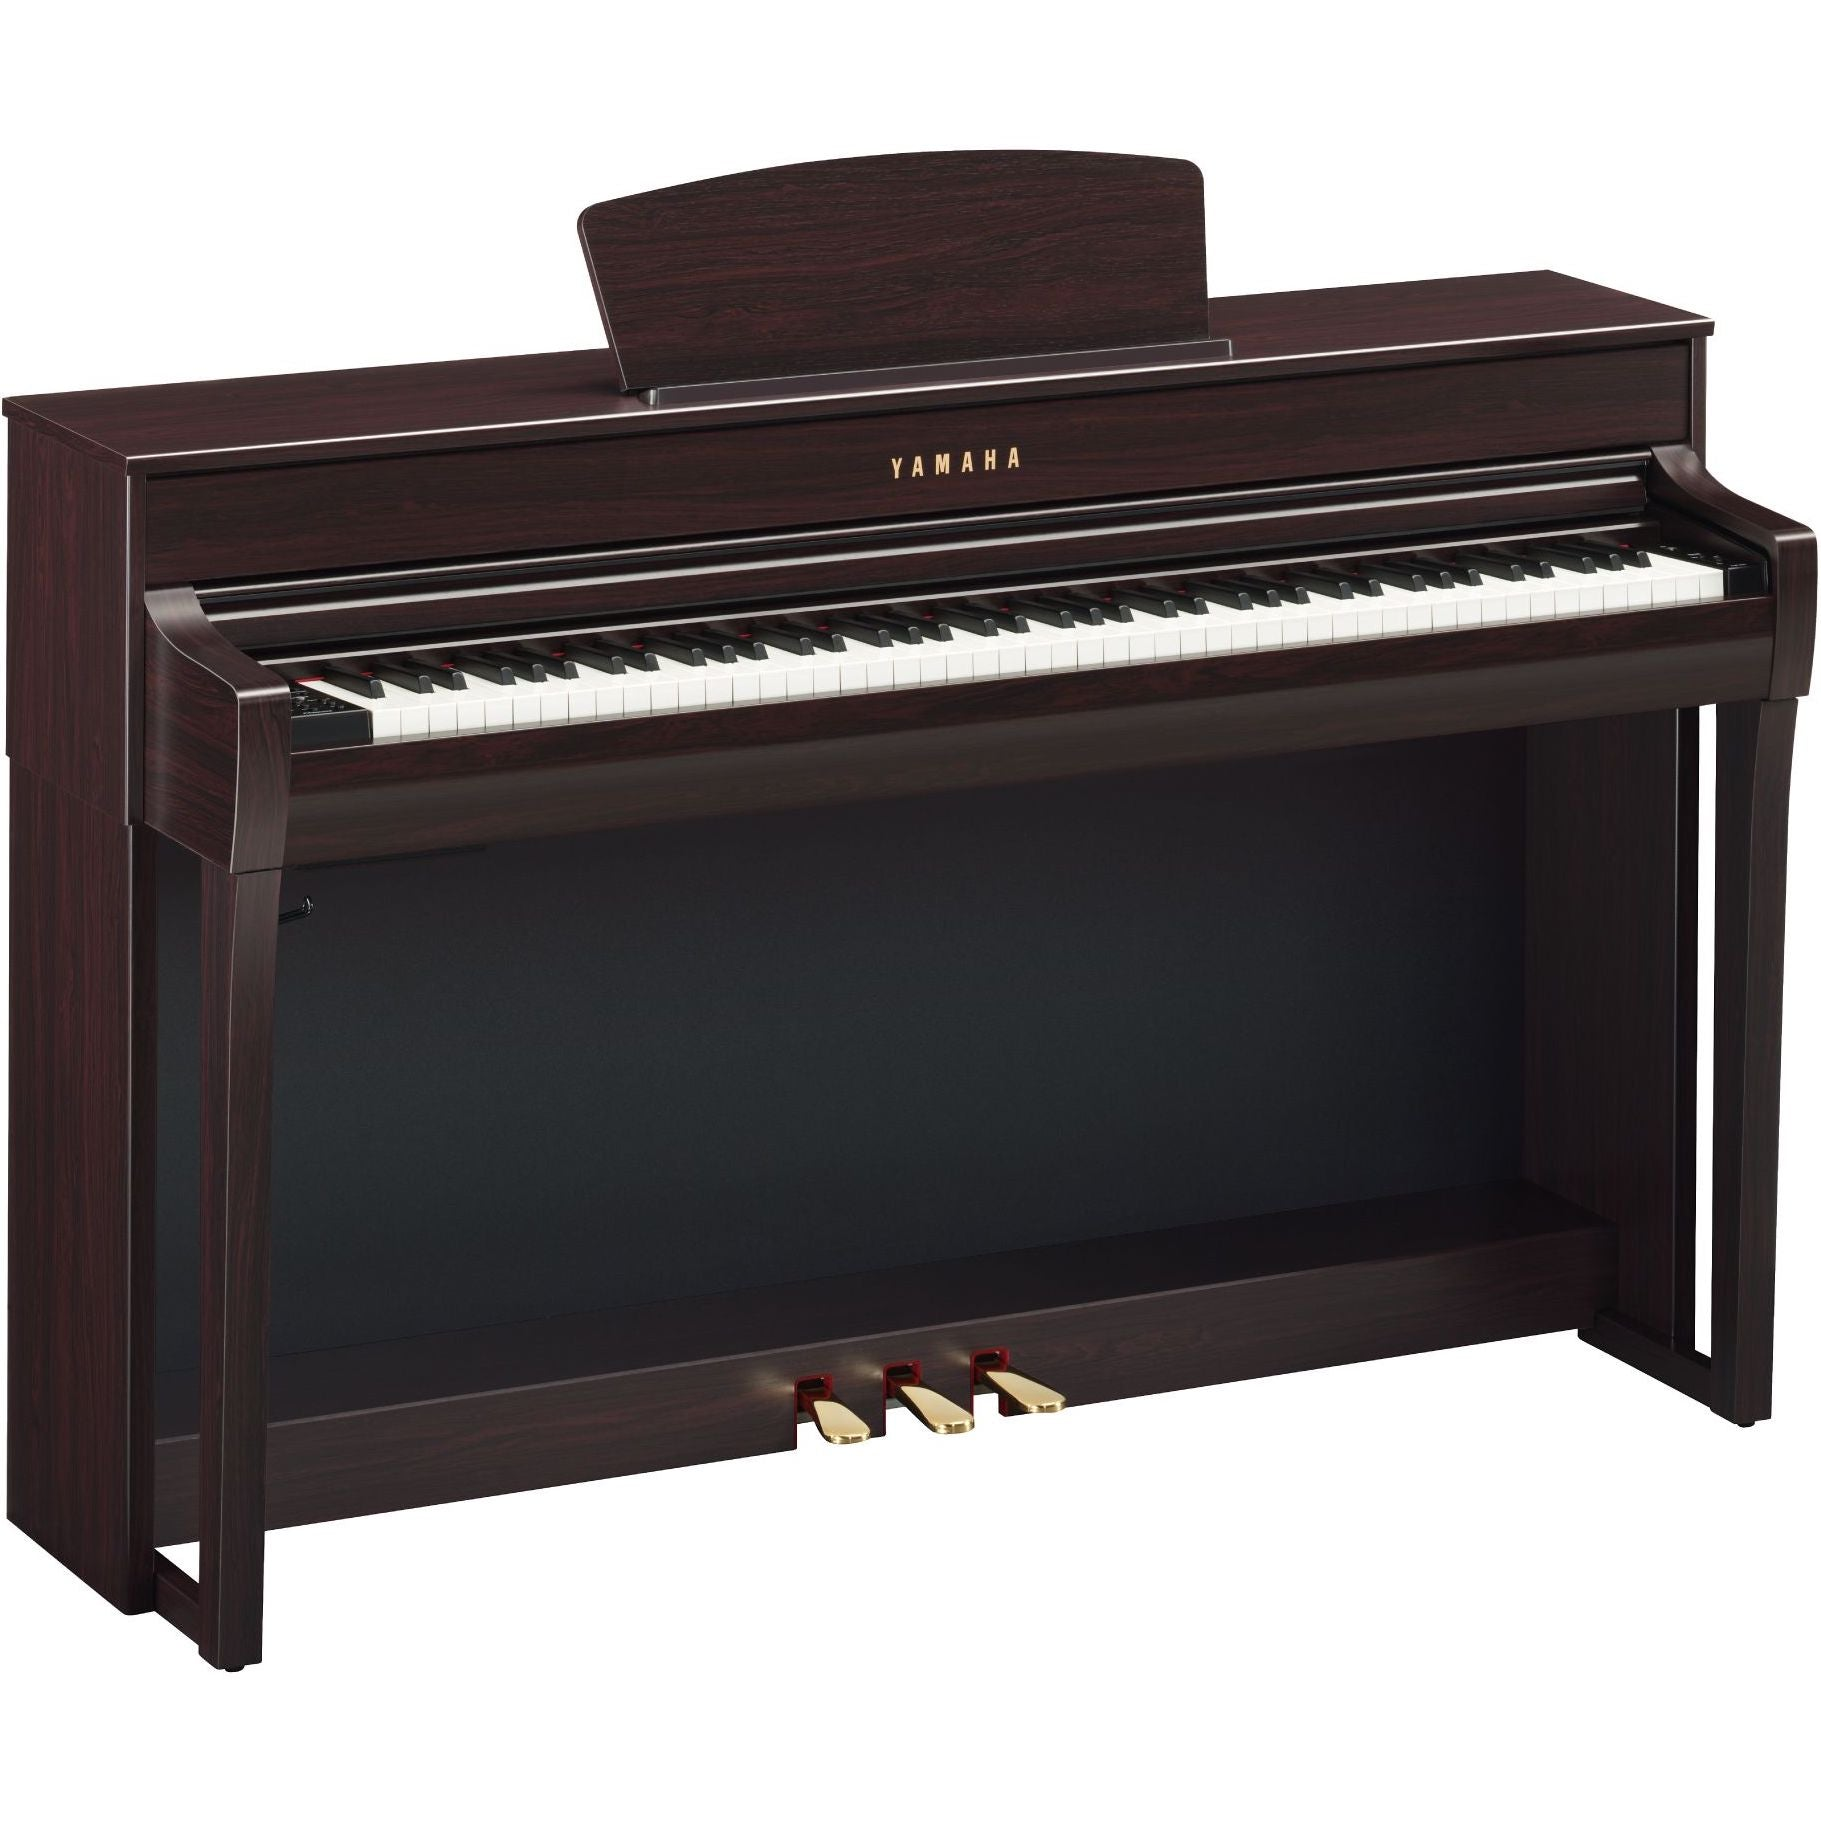 Yamaha Clavinova CLP-735R Dark Rosewood Digital Piano | Music Experience | Shop Online | South Africa